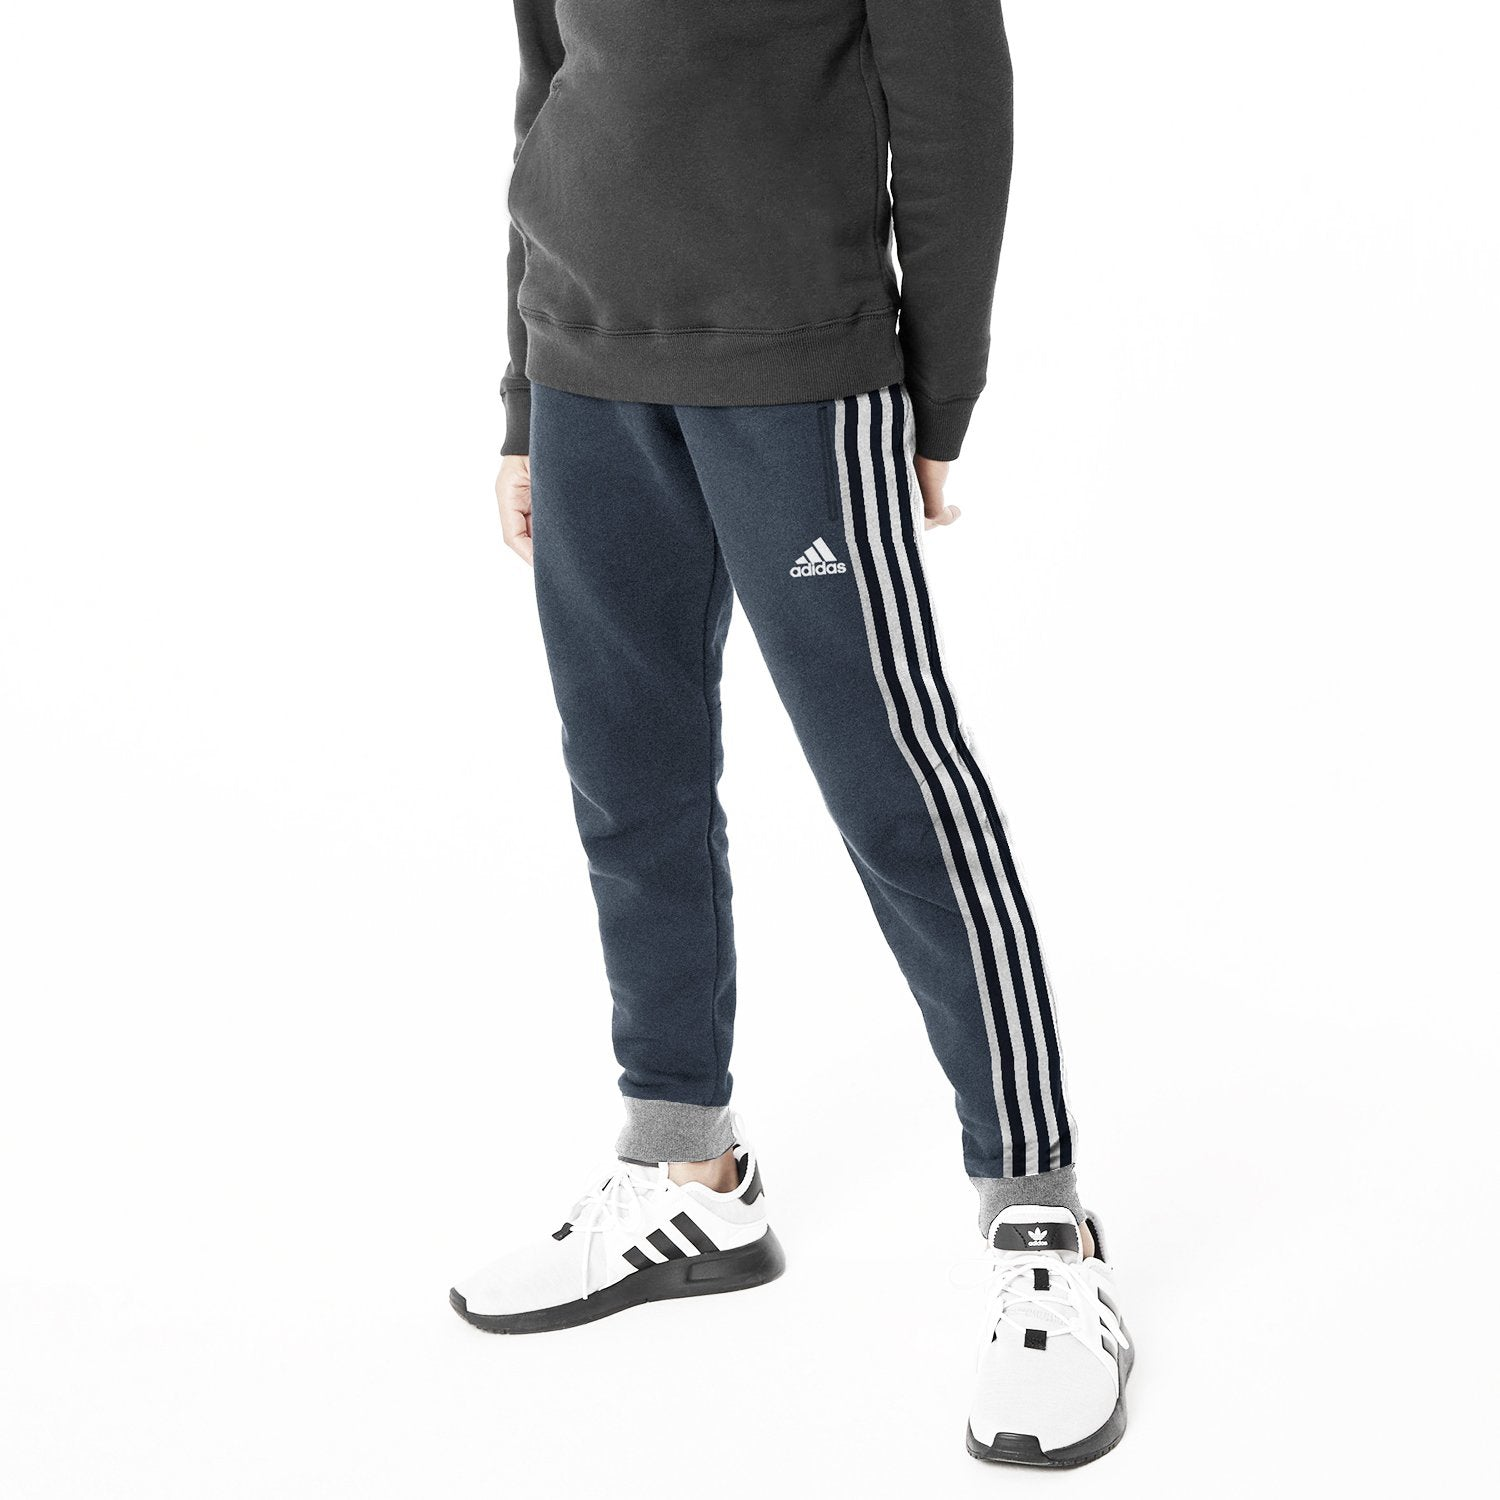 Adidas Single Jersey Jogger Trouser For Kids-Navy Melange With Stripes-NA8571